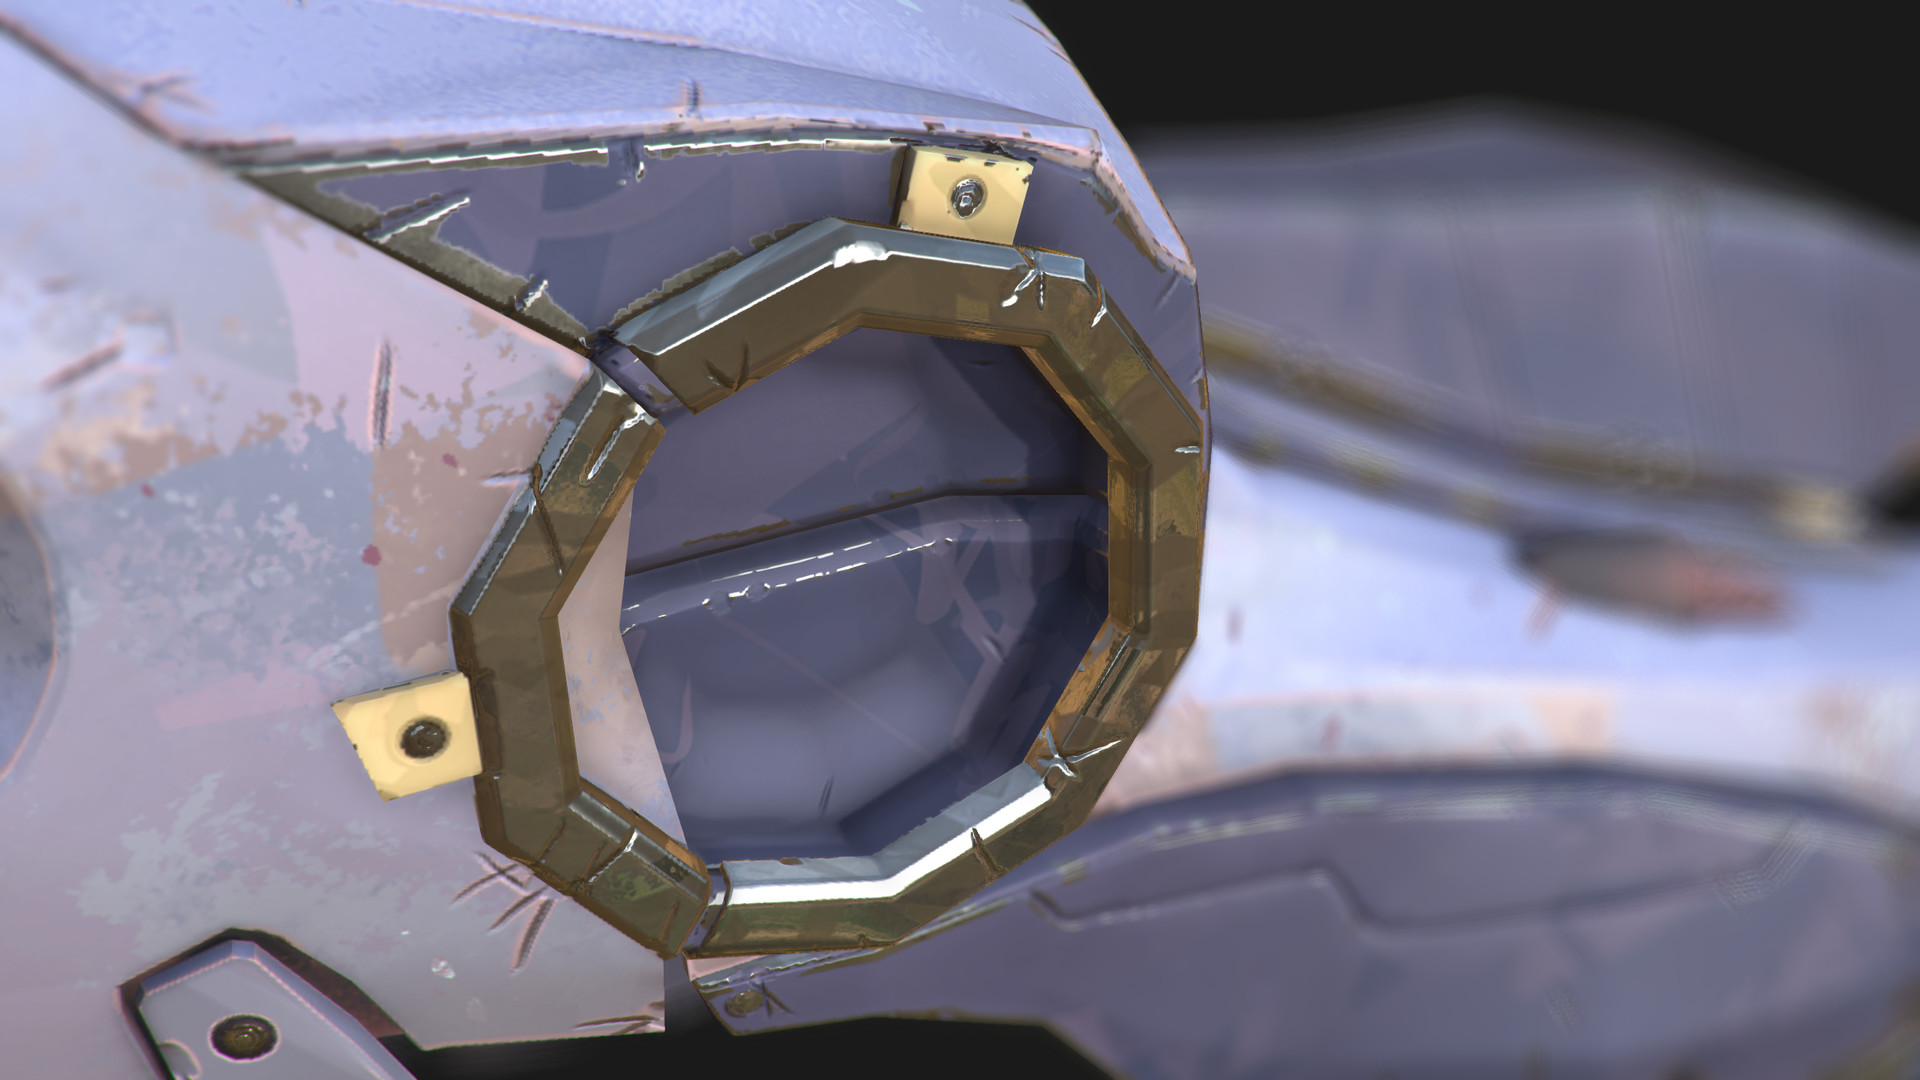 Texture Work - Eye Socket